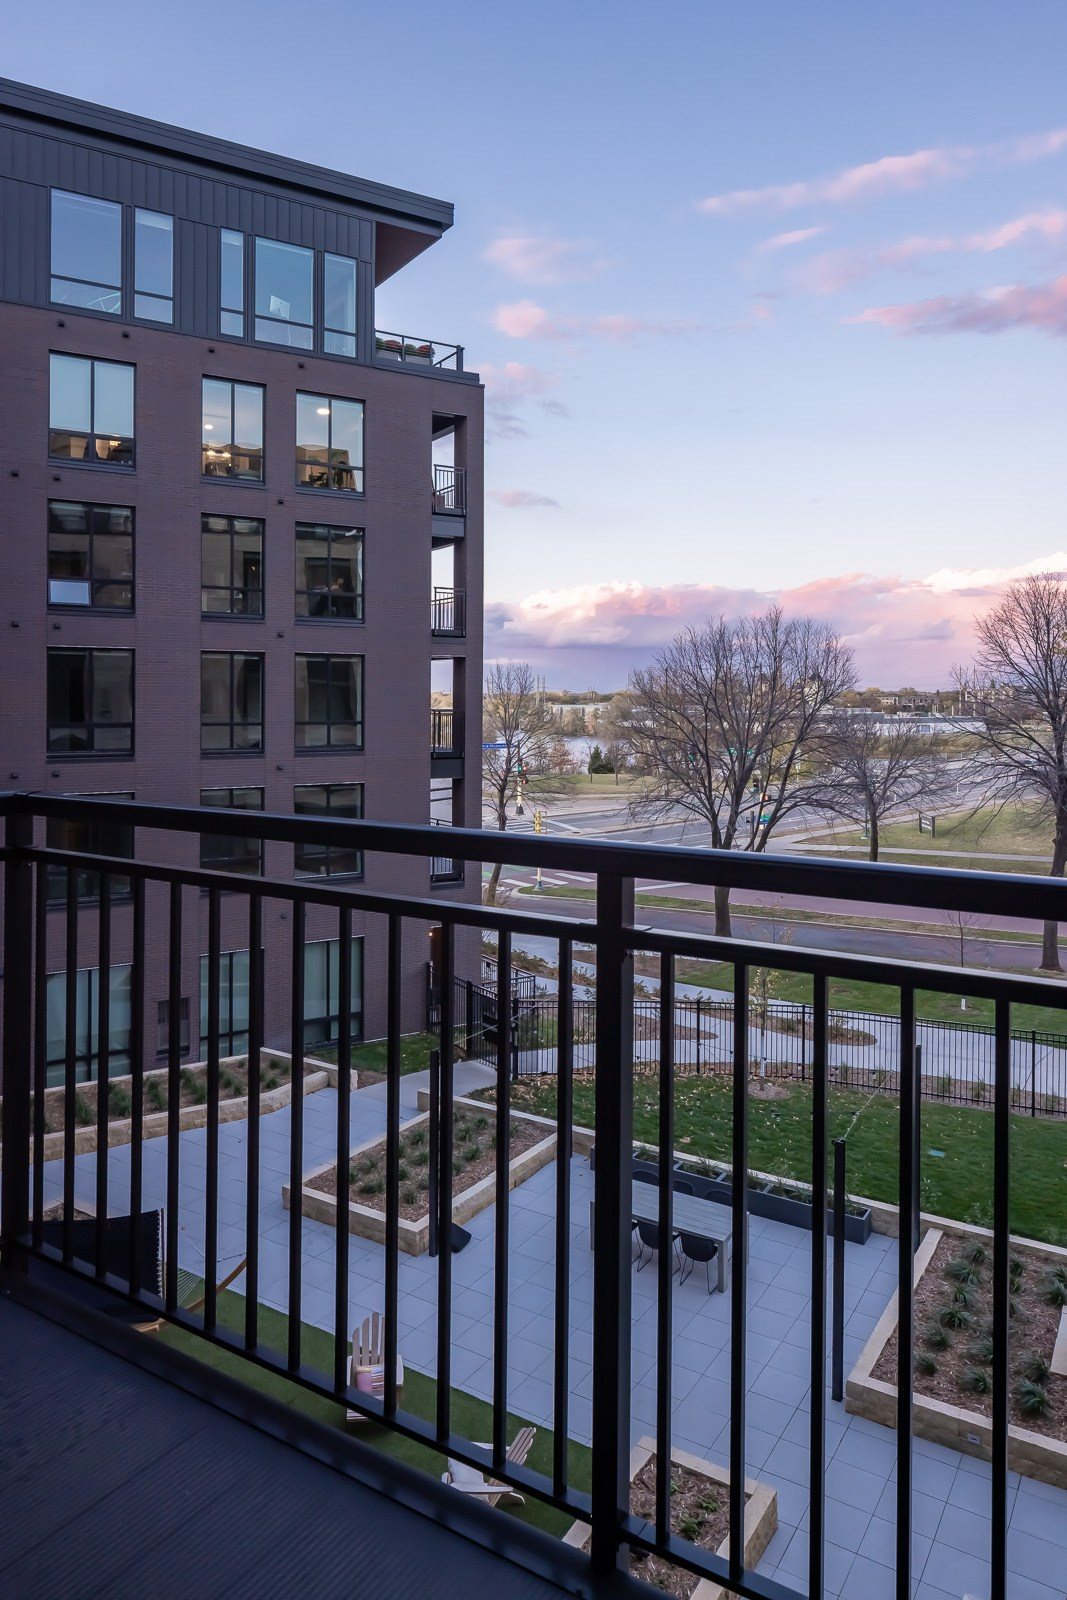 View over Mississippi river and entertaining terrace from apartment balcony